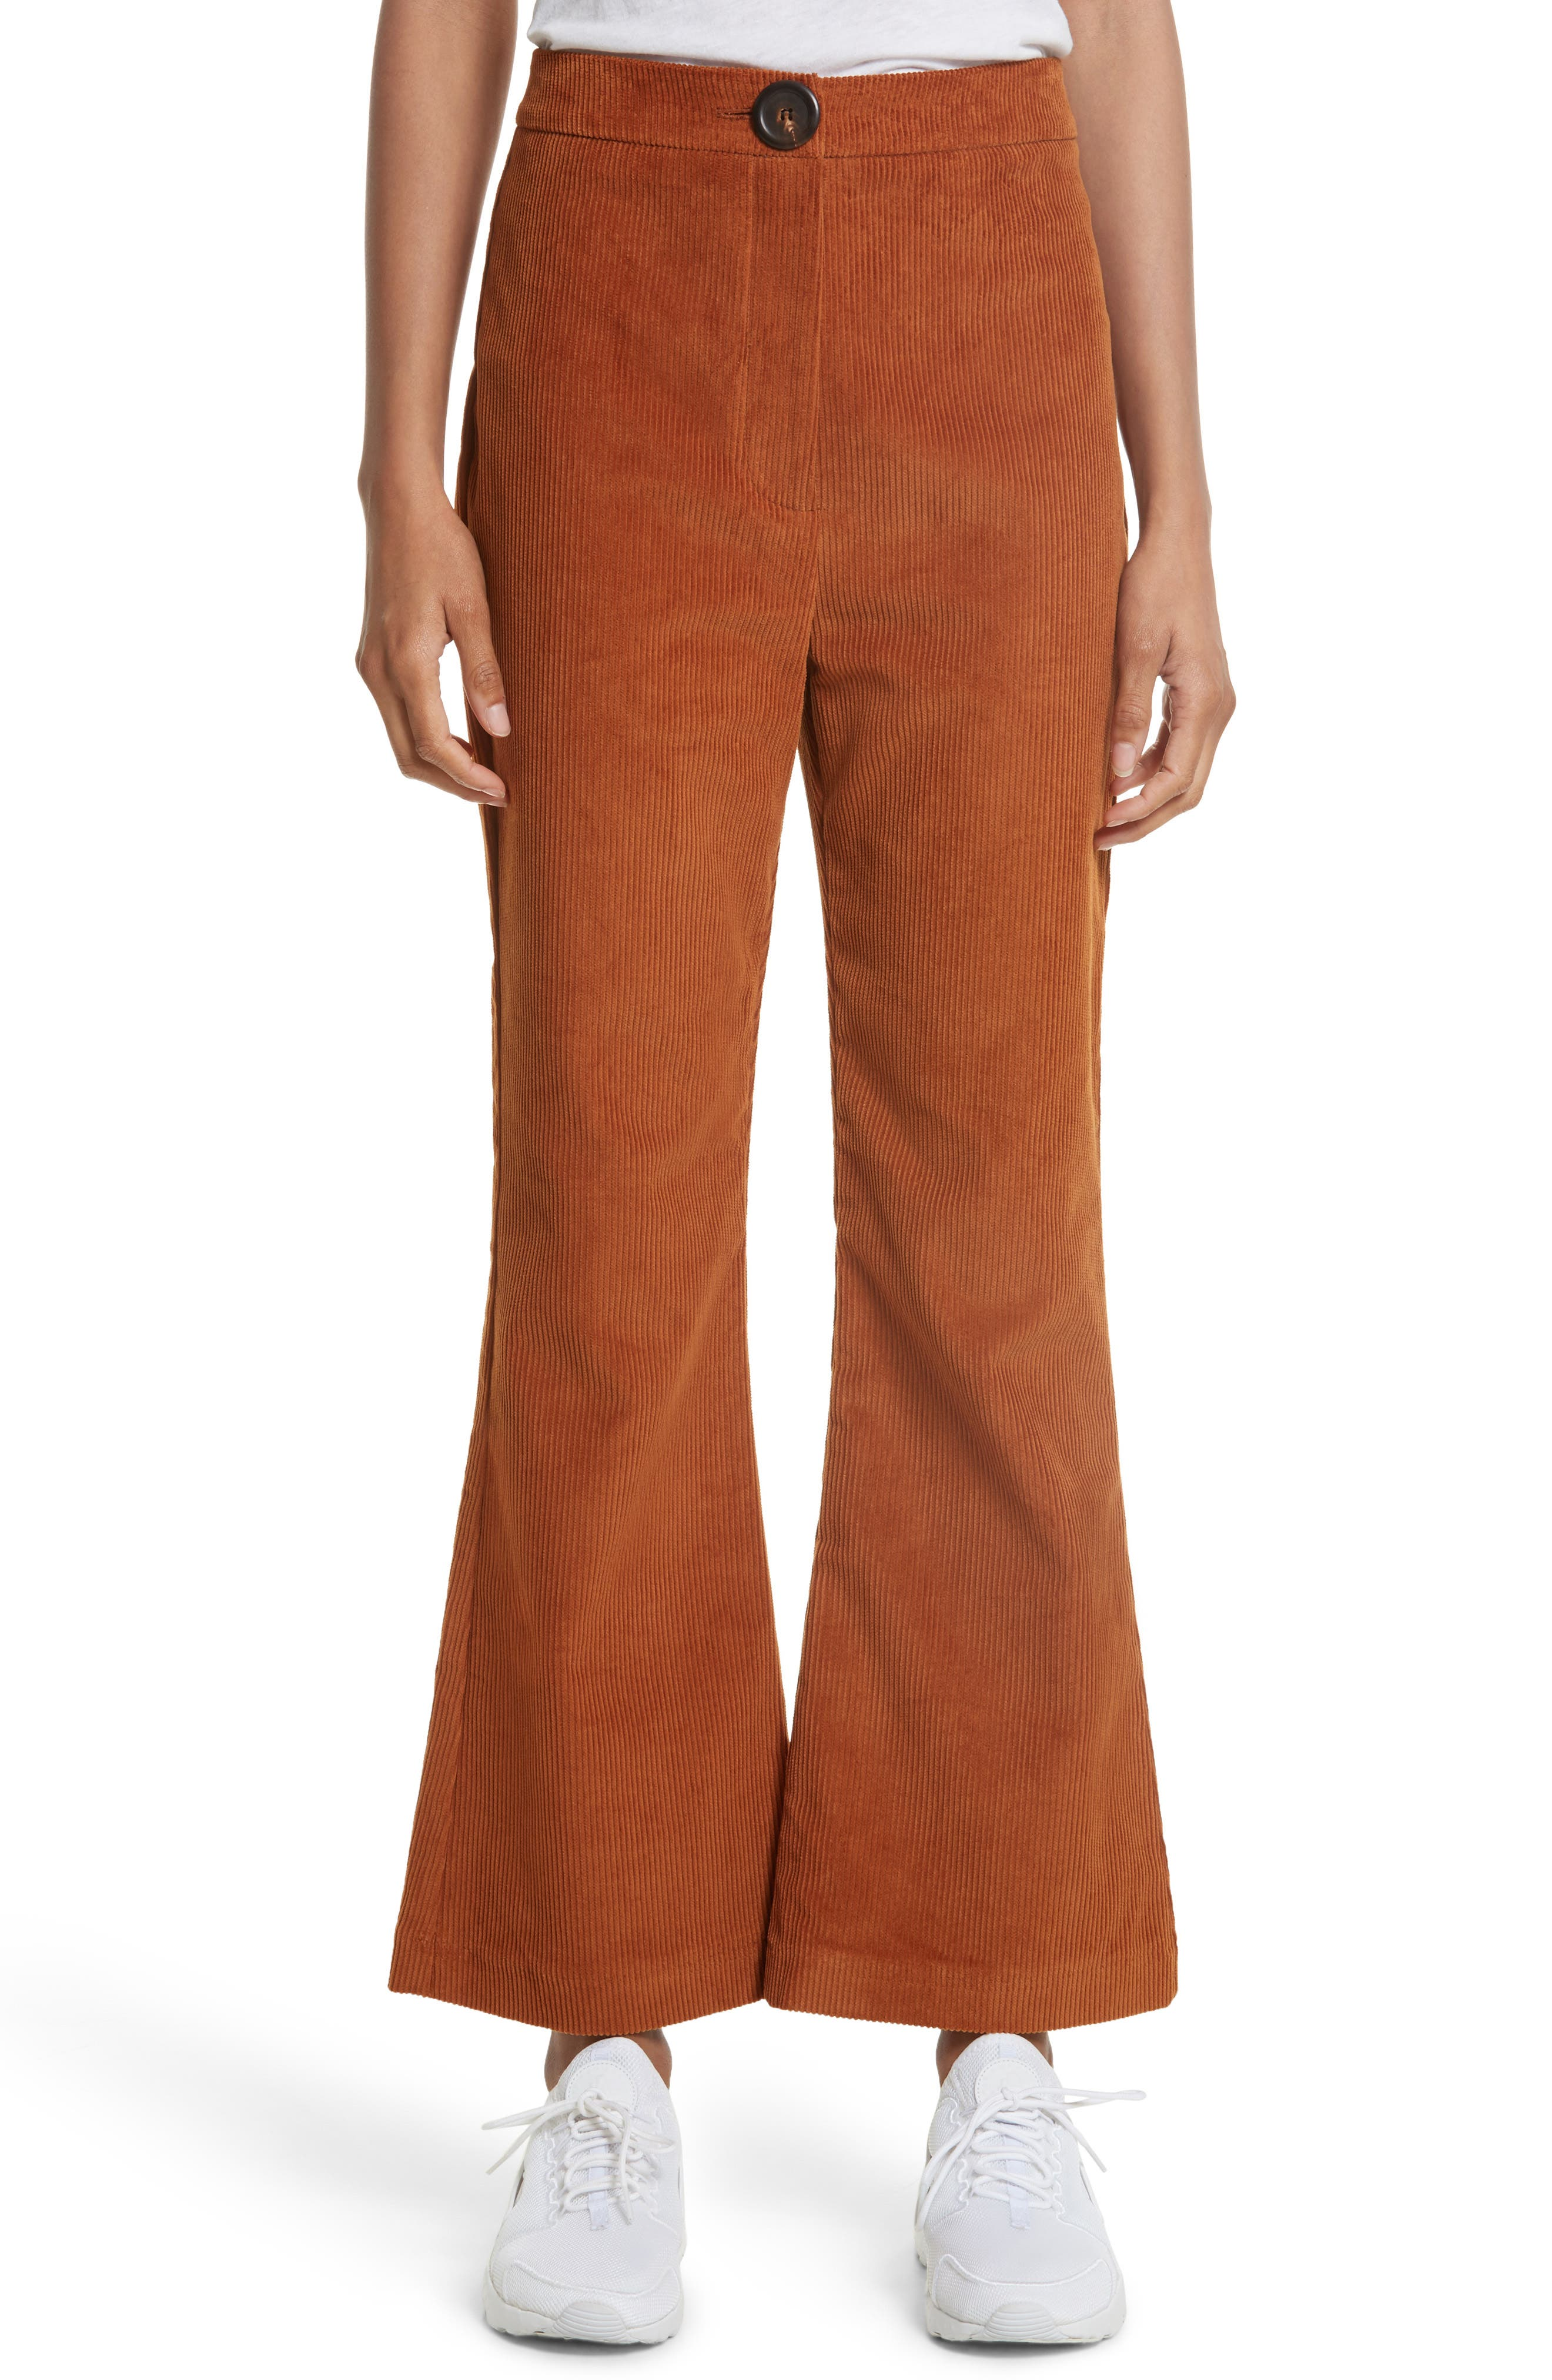 Alternate Image 1 Selected - A.W.A.K.E. Crop Flare Corduroy Trousers